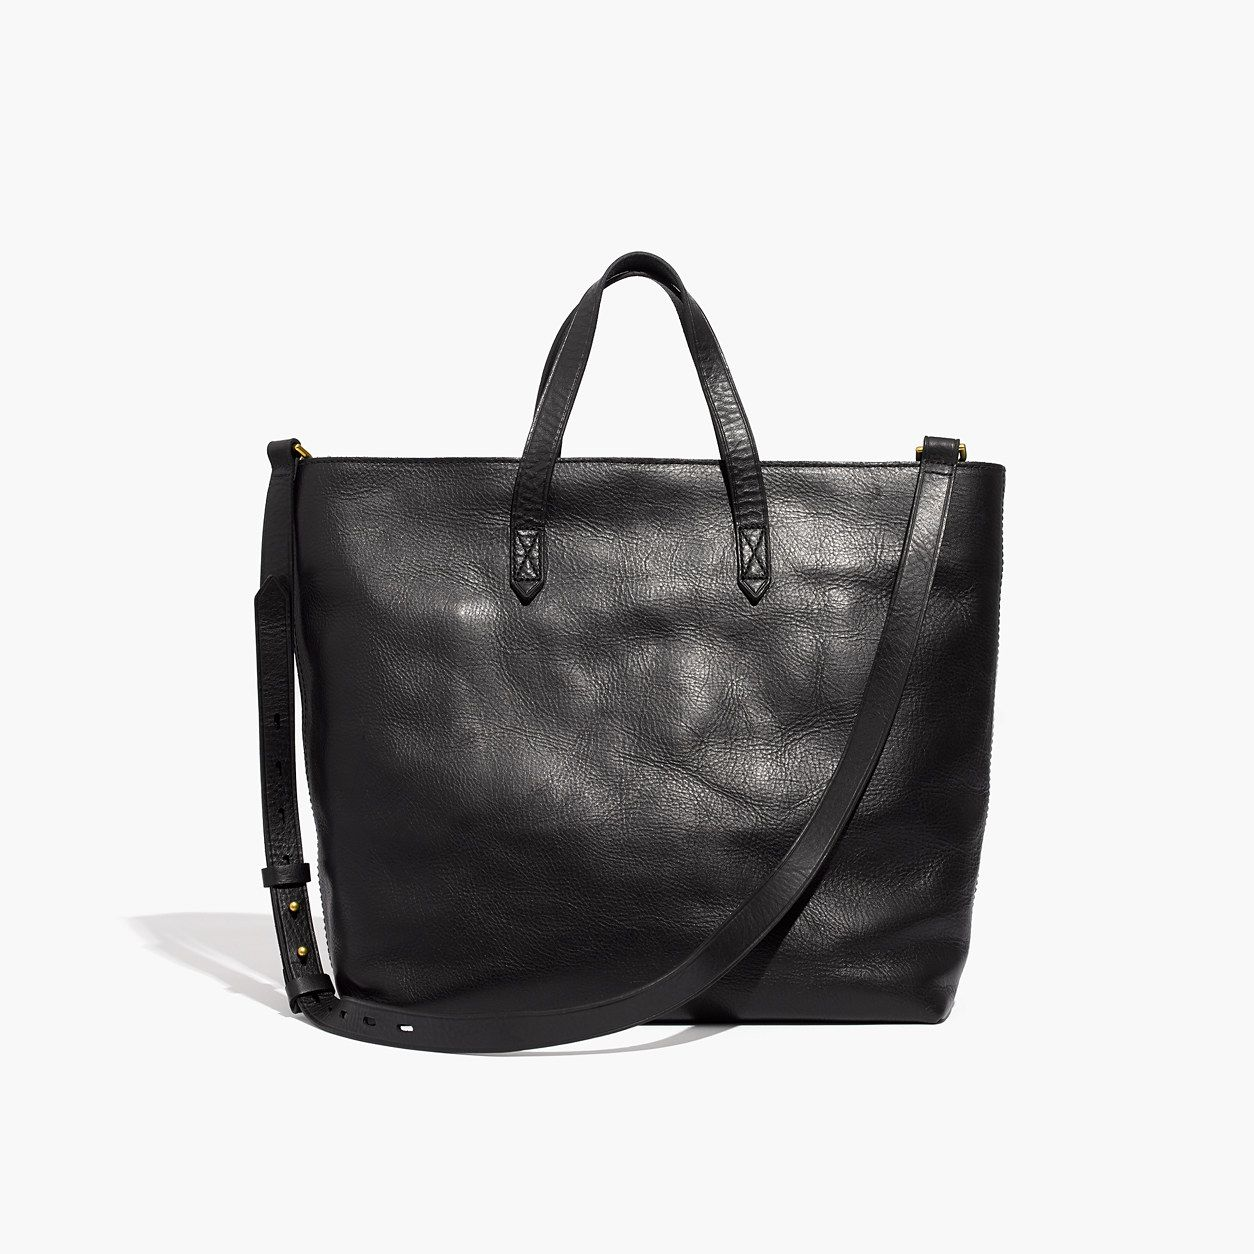 057441dc5 Madewell Zip-Top Transport Tote